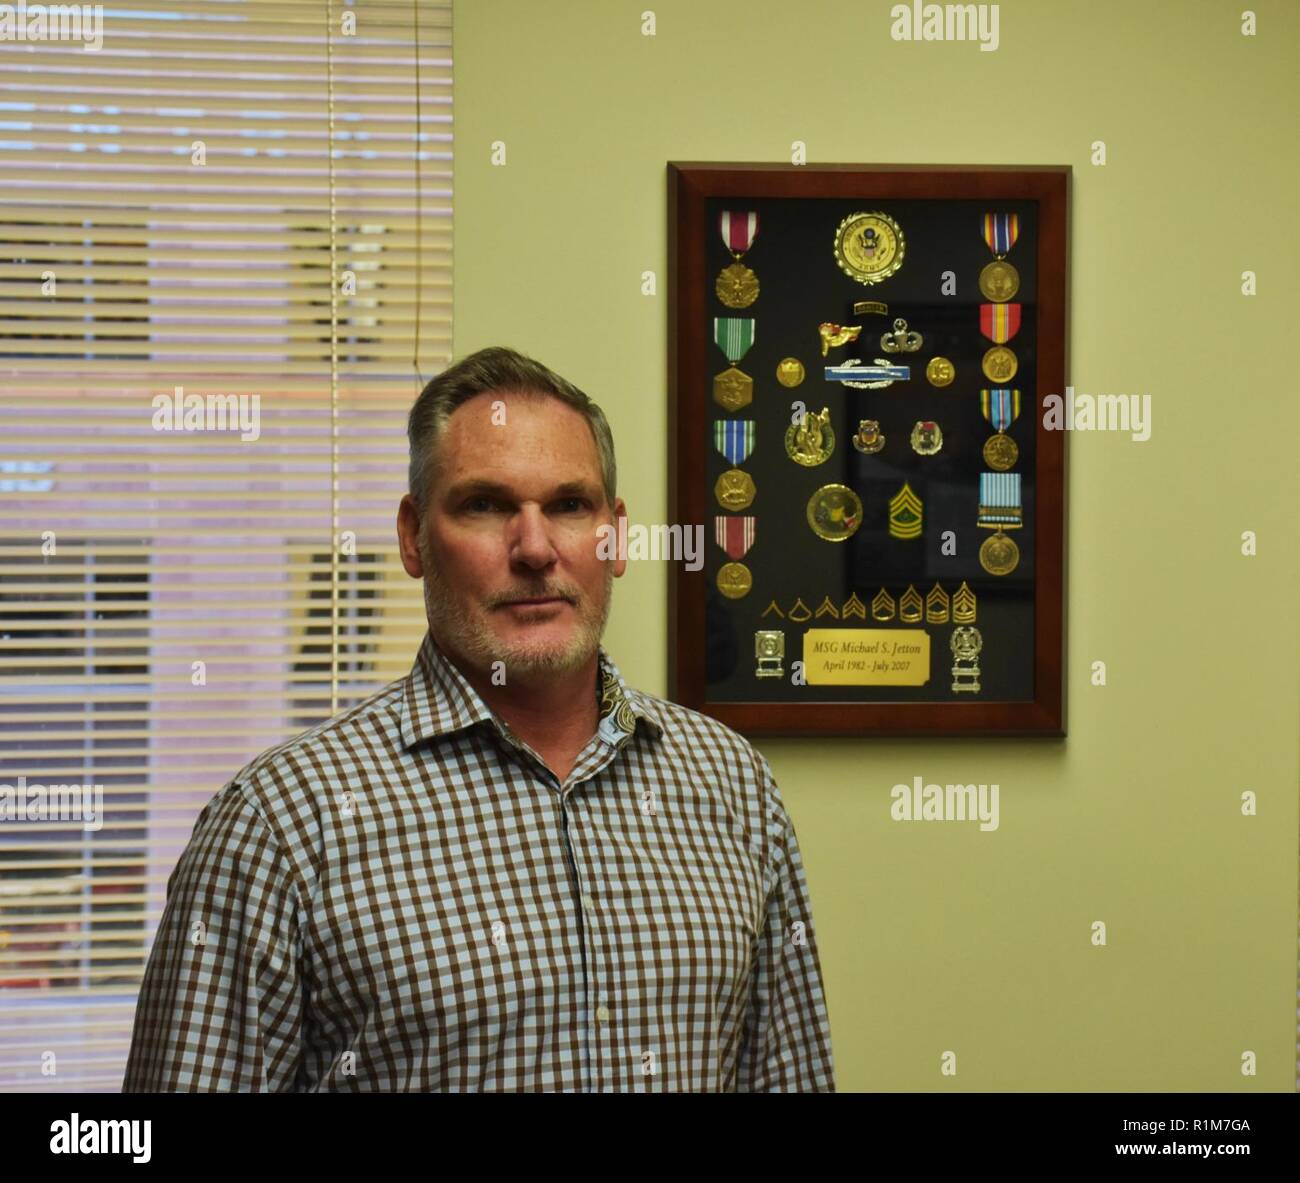 Retired Master Sgt. Mike Jetton stands by his military decorations and awards, including the Combat Infantryman Badge he earned in Grenada, during Operation Urgent Fury in Oct. 1983, Oct. 18, Phoenix Recruiting Battalion Headquarters, Phoenix. Jetton was a nineteen year old specialist serving with the 82nd Airborne Division as a paratrooper, when his battalion was deployed to engage in the operation. ( - Stock Image